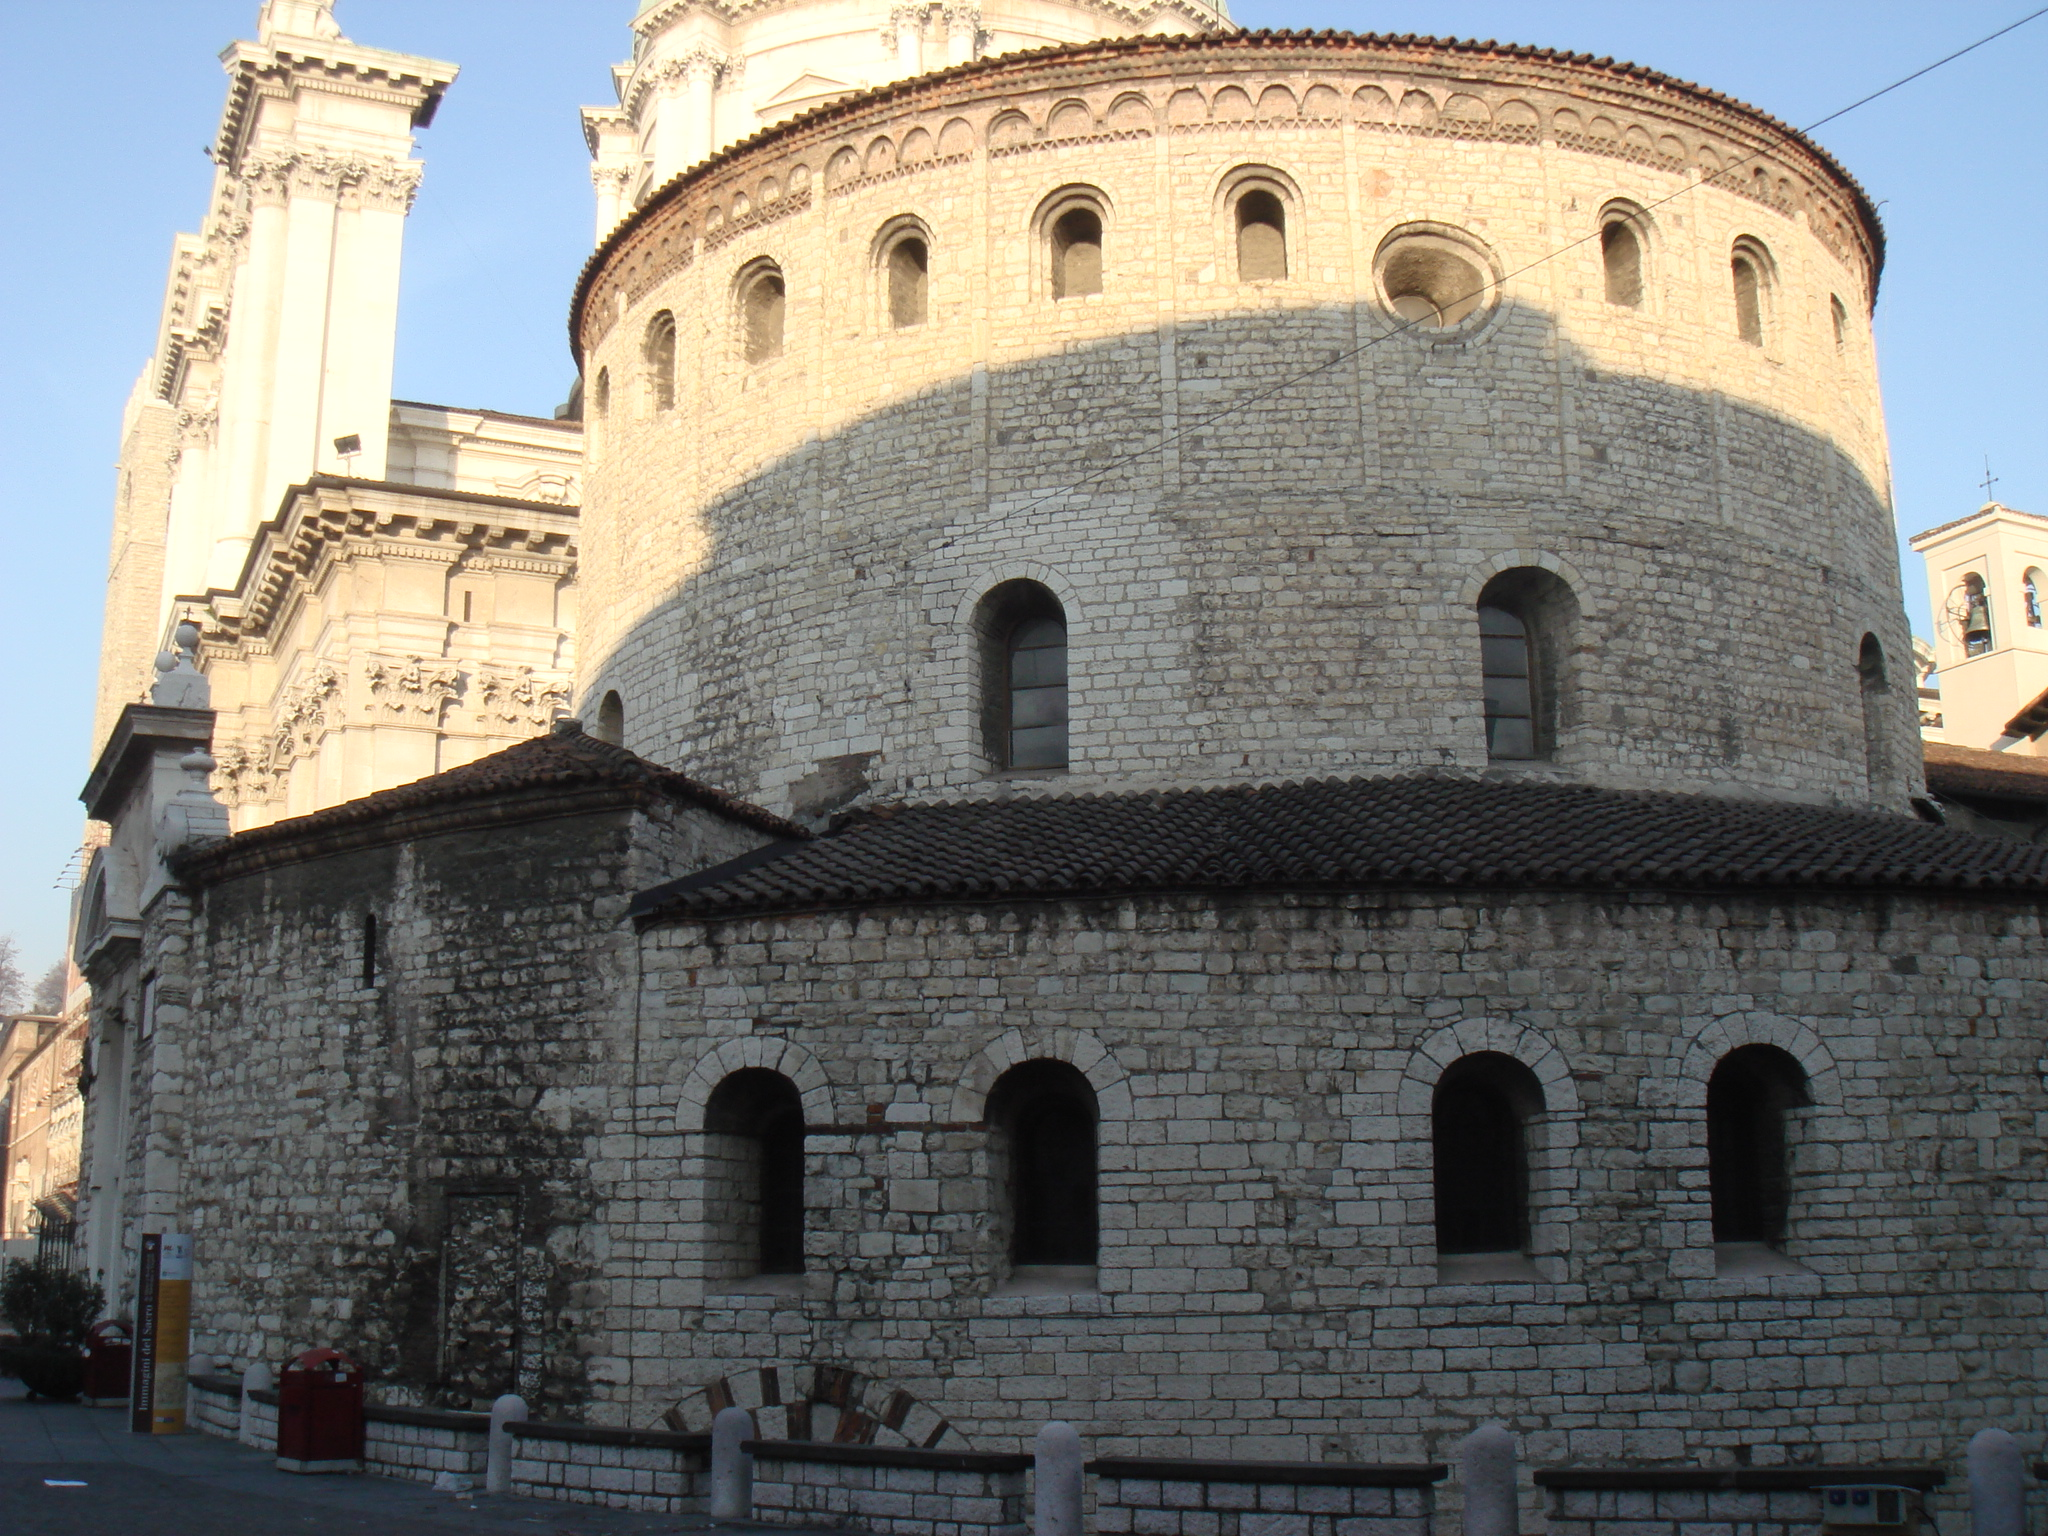 The Old Cathedral or Rotunda